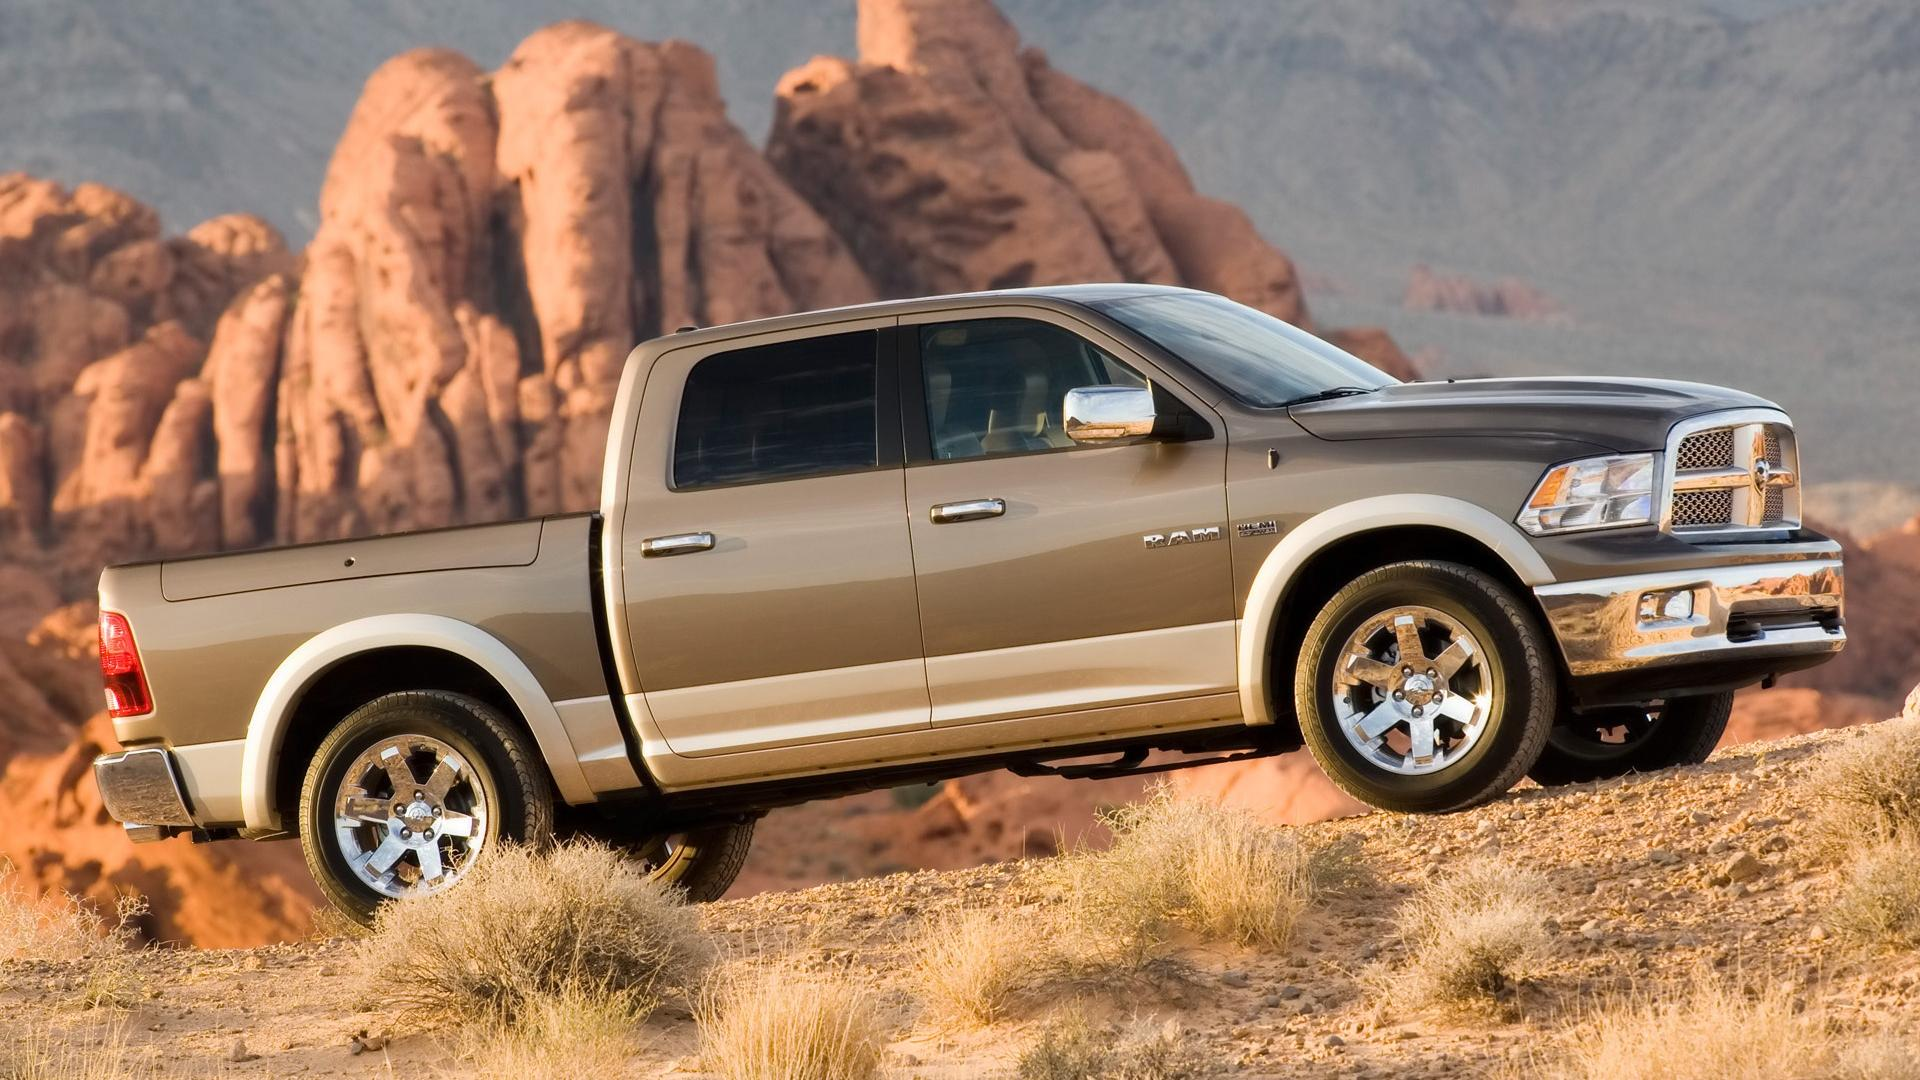 2009 Dodge Ram Laramie Side Angle 1920x1080